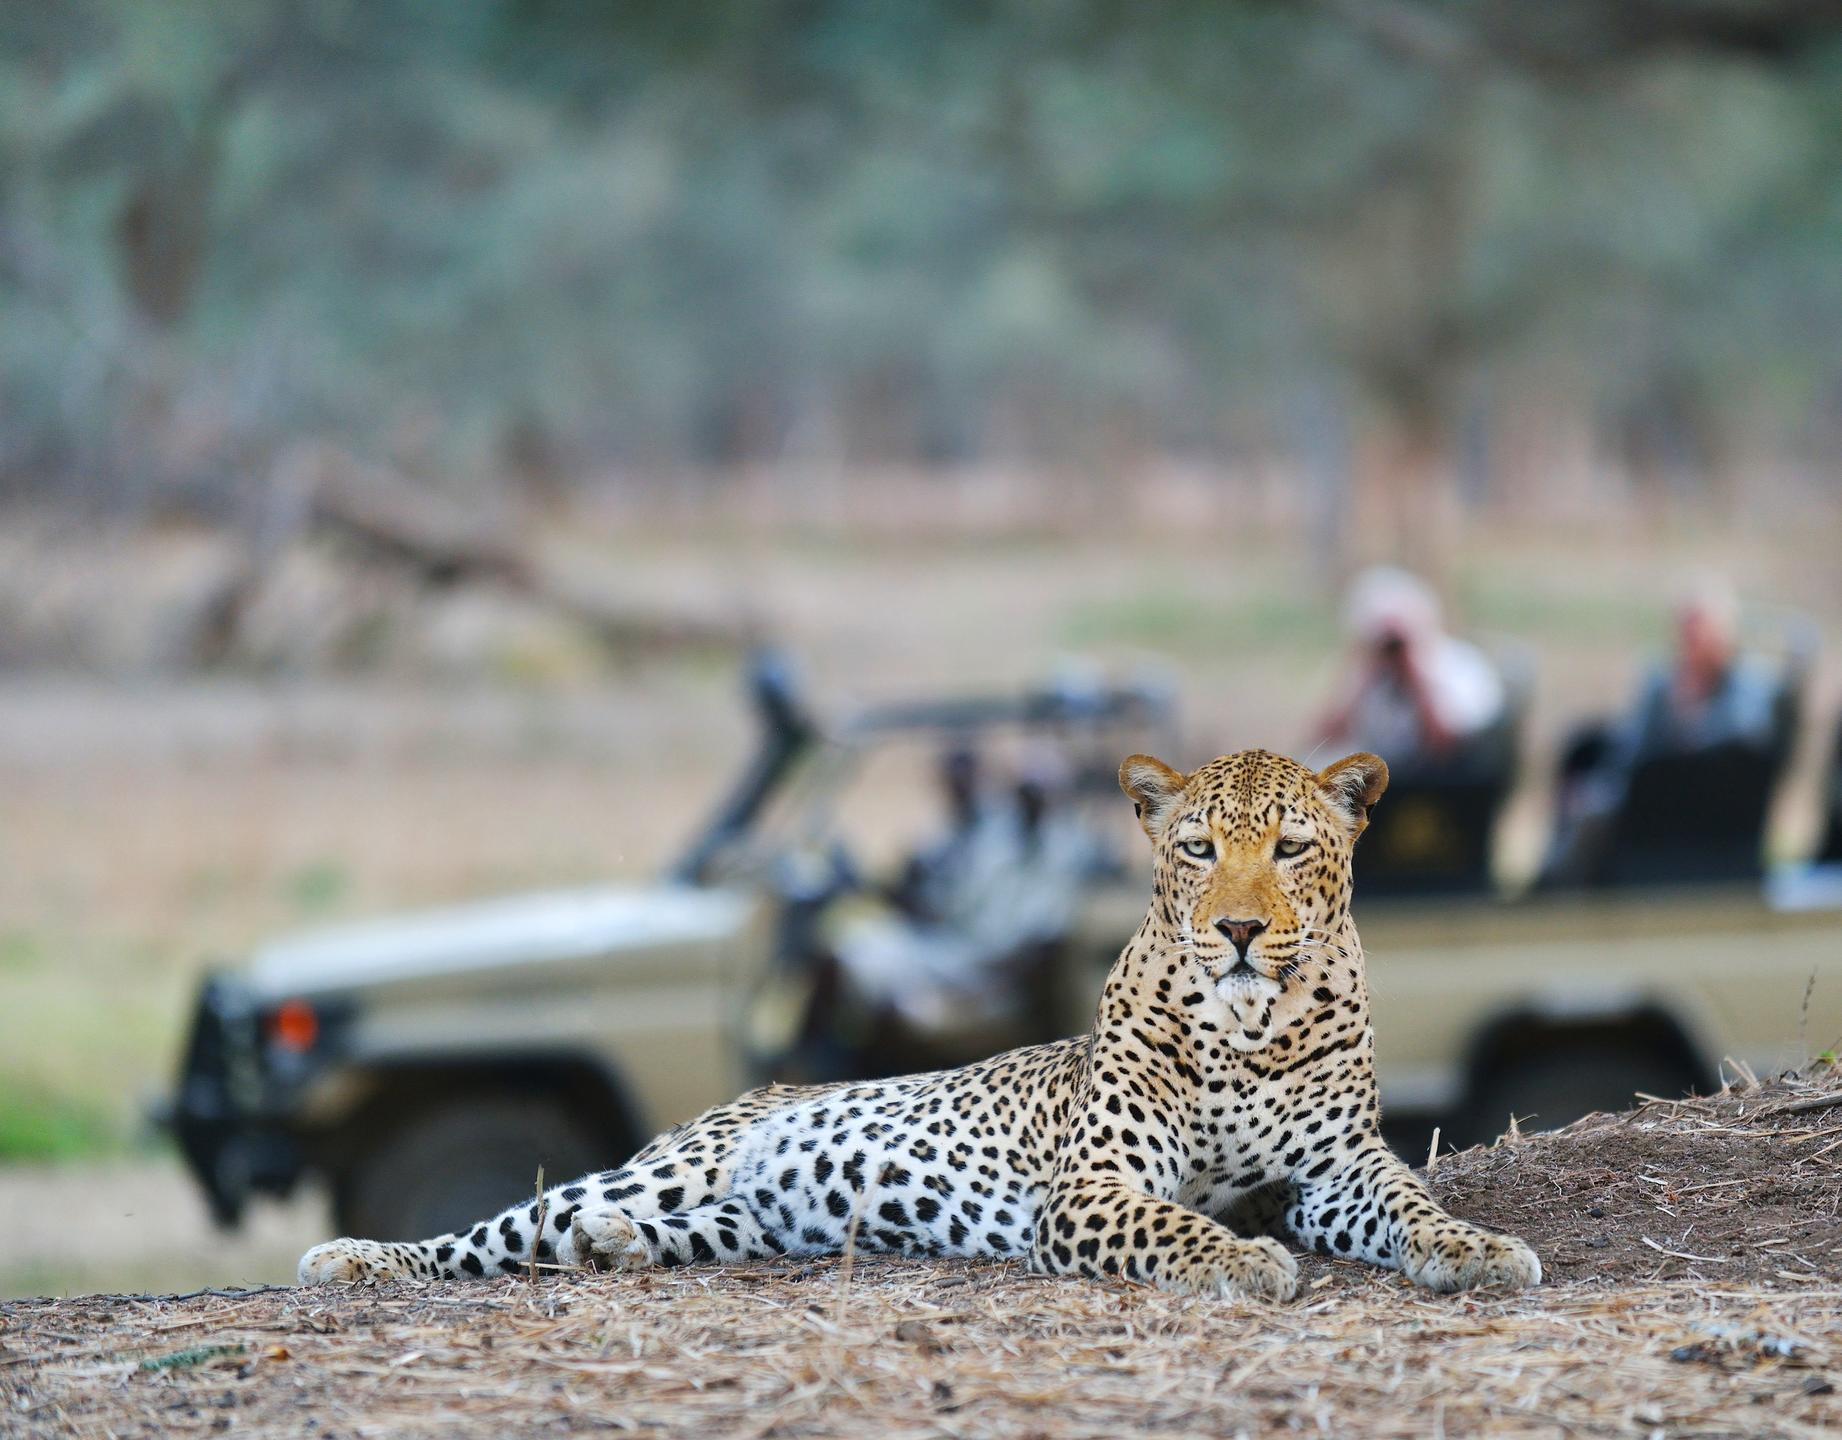 old_mondoro_leopard_face_on_vehicle1